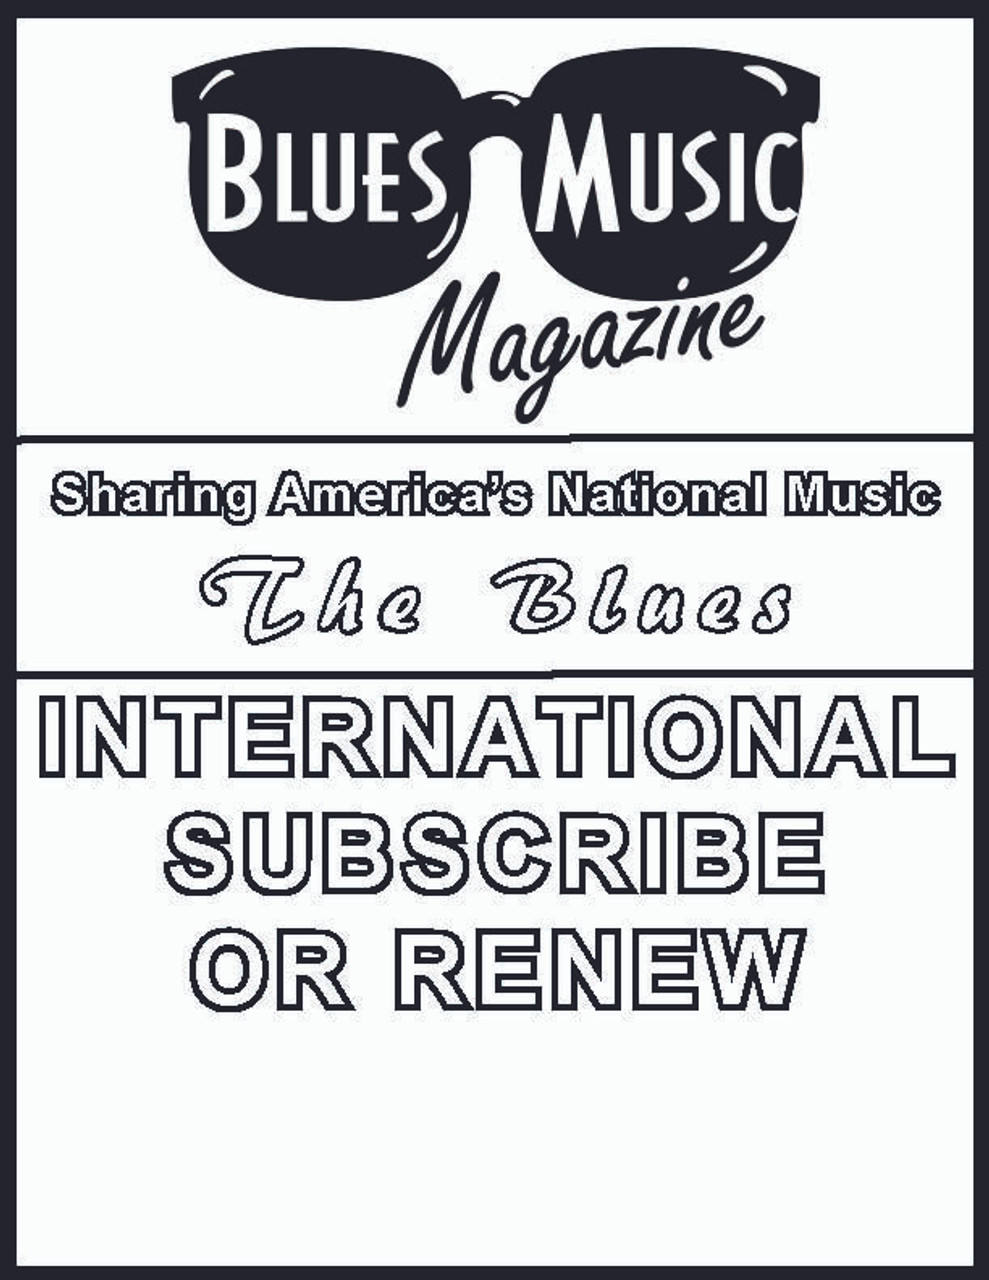 INTERNATIONAL SUBSCRIBE OR RENEW. CLICK TO VIEW OPTIONS.